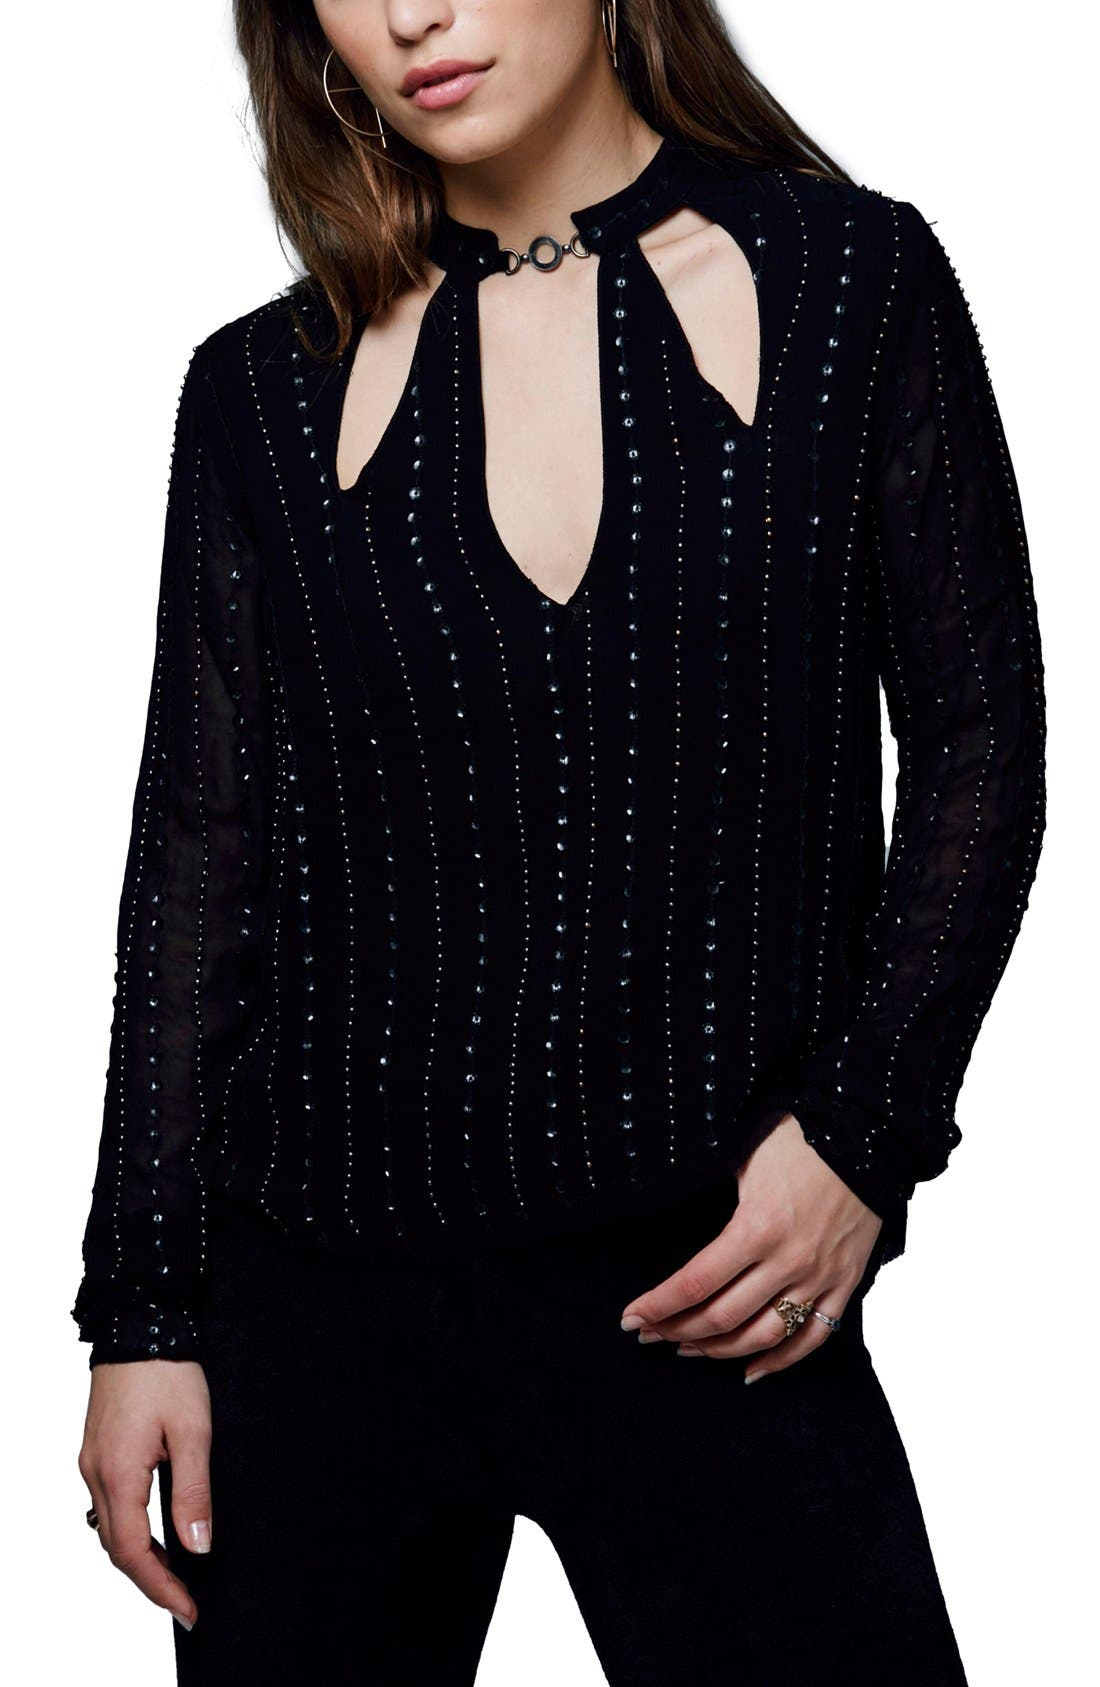 Alternate Image 1 Selected - Free People 'Young Love' Embellished Blouse